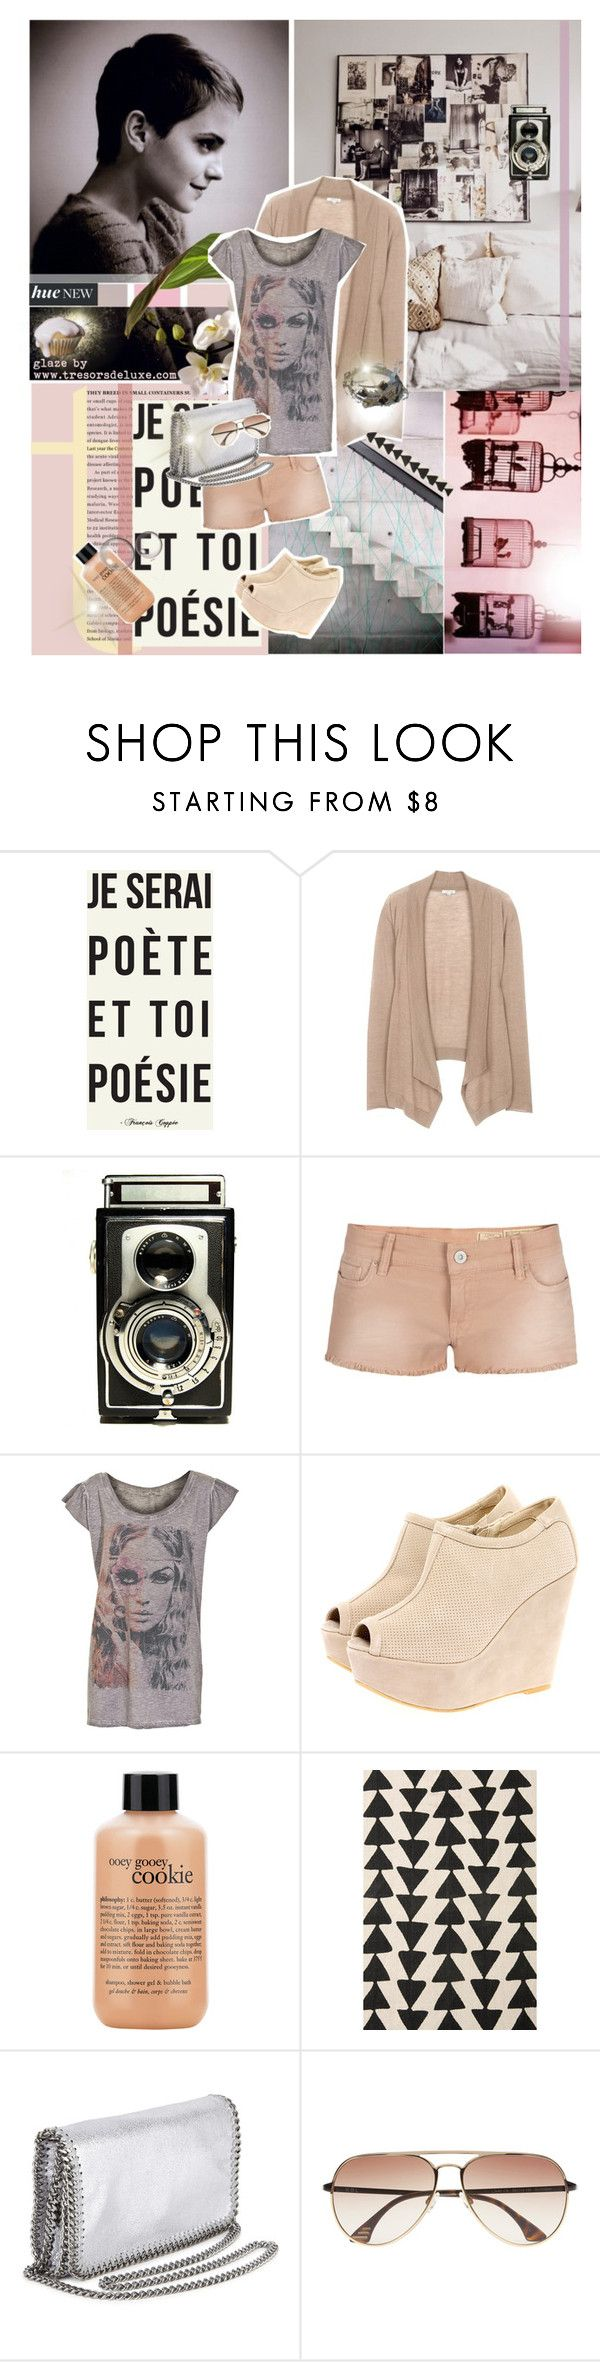 """""""Glaze by Tresors De Luxe"""" by tresorsdeluxe ❤ liked on Polyvore featuring Emma Watson, AllSaints, Athletic Vintage, Boohoo, philosophy, STELLA McCARTNEY, KBL Eyewear, ripped shorts, graphic tees and acid wash shorts"""